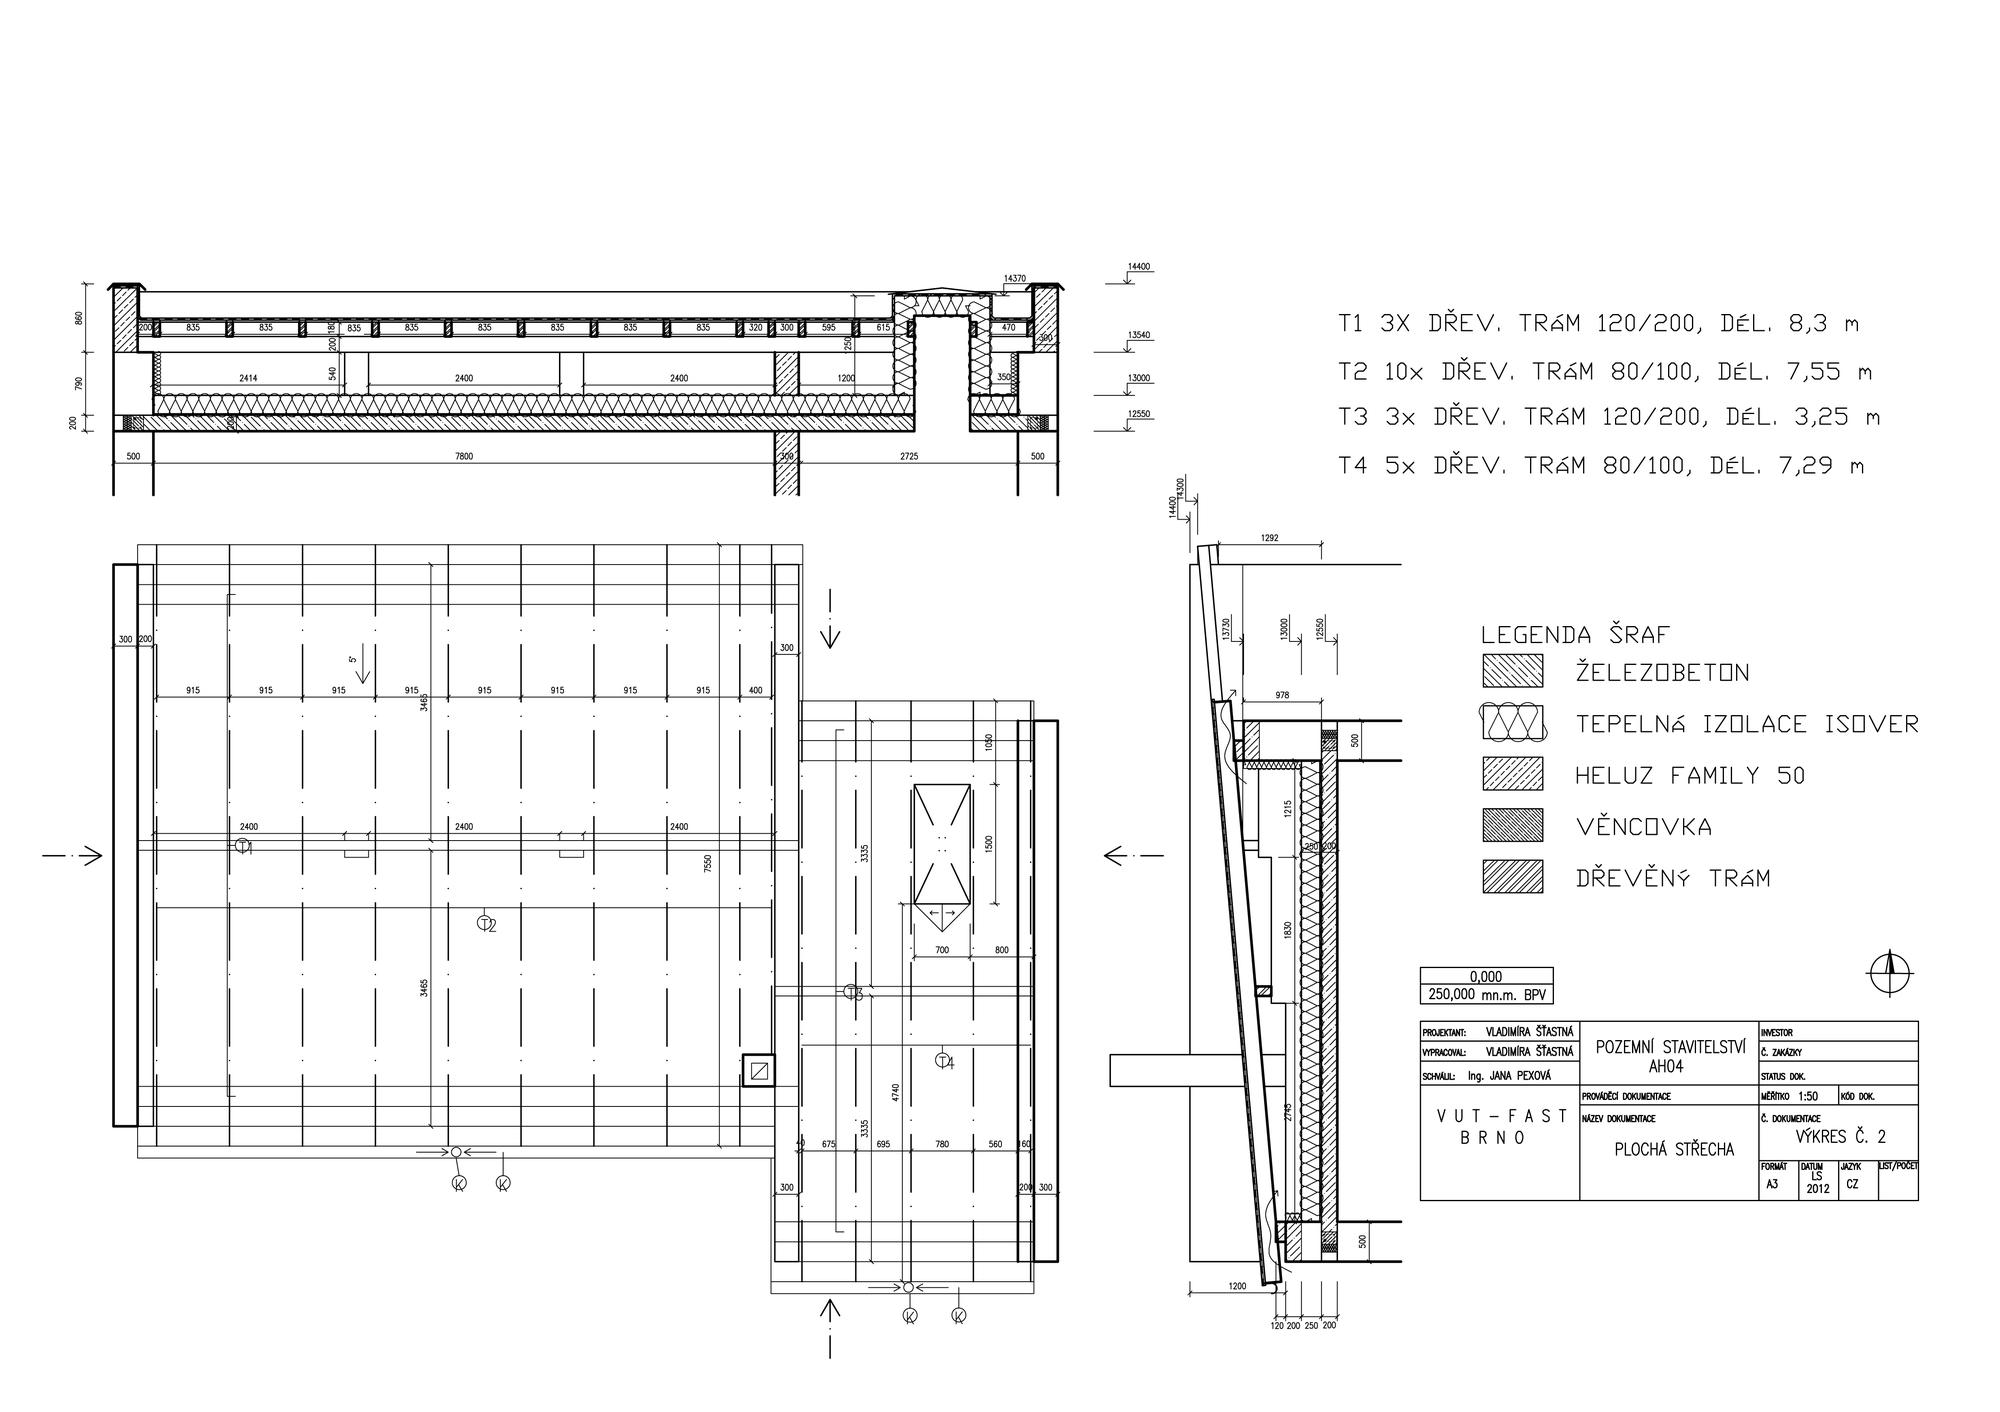 Flat Double Leaf Roof Technical Drawing Architecture